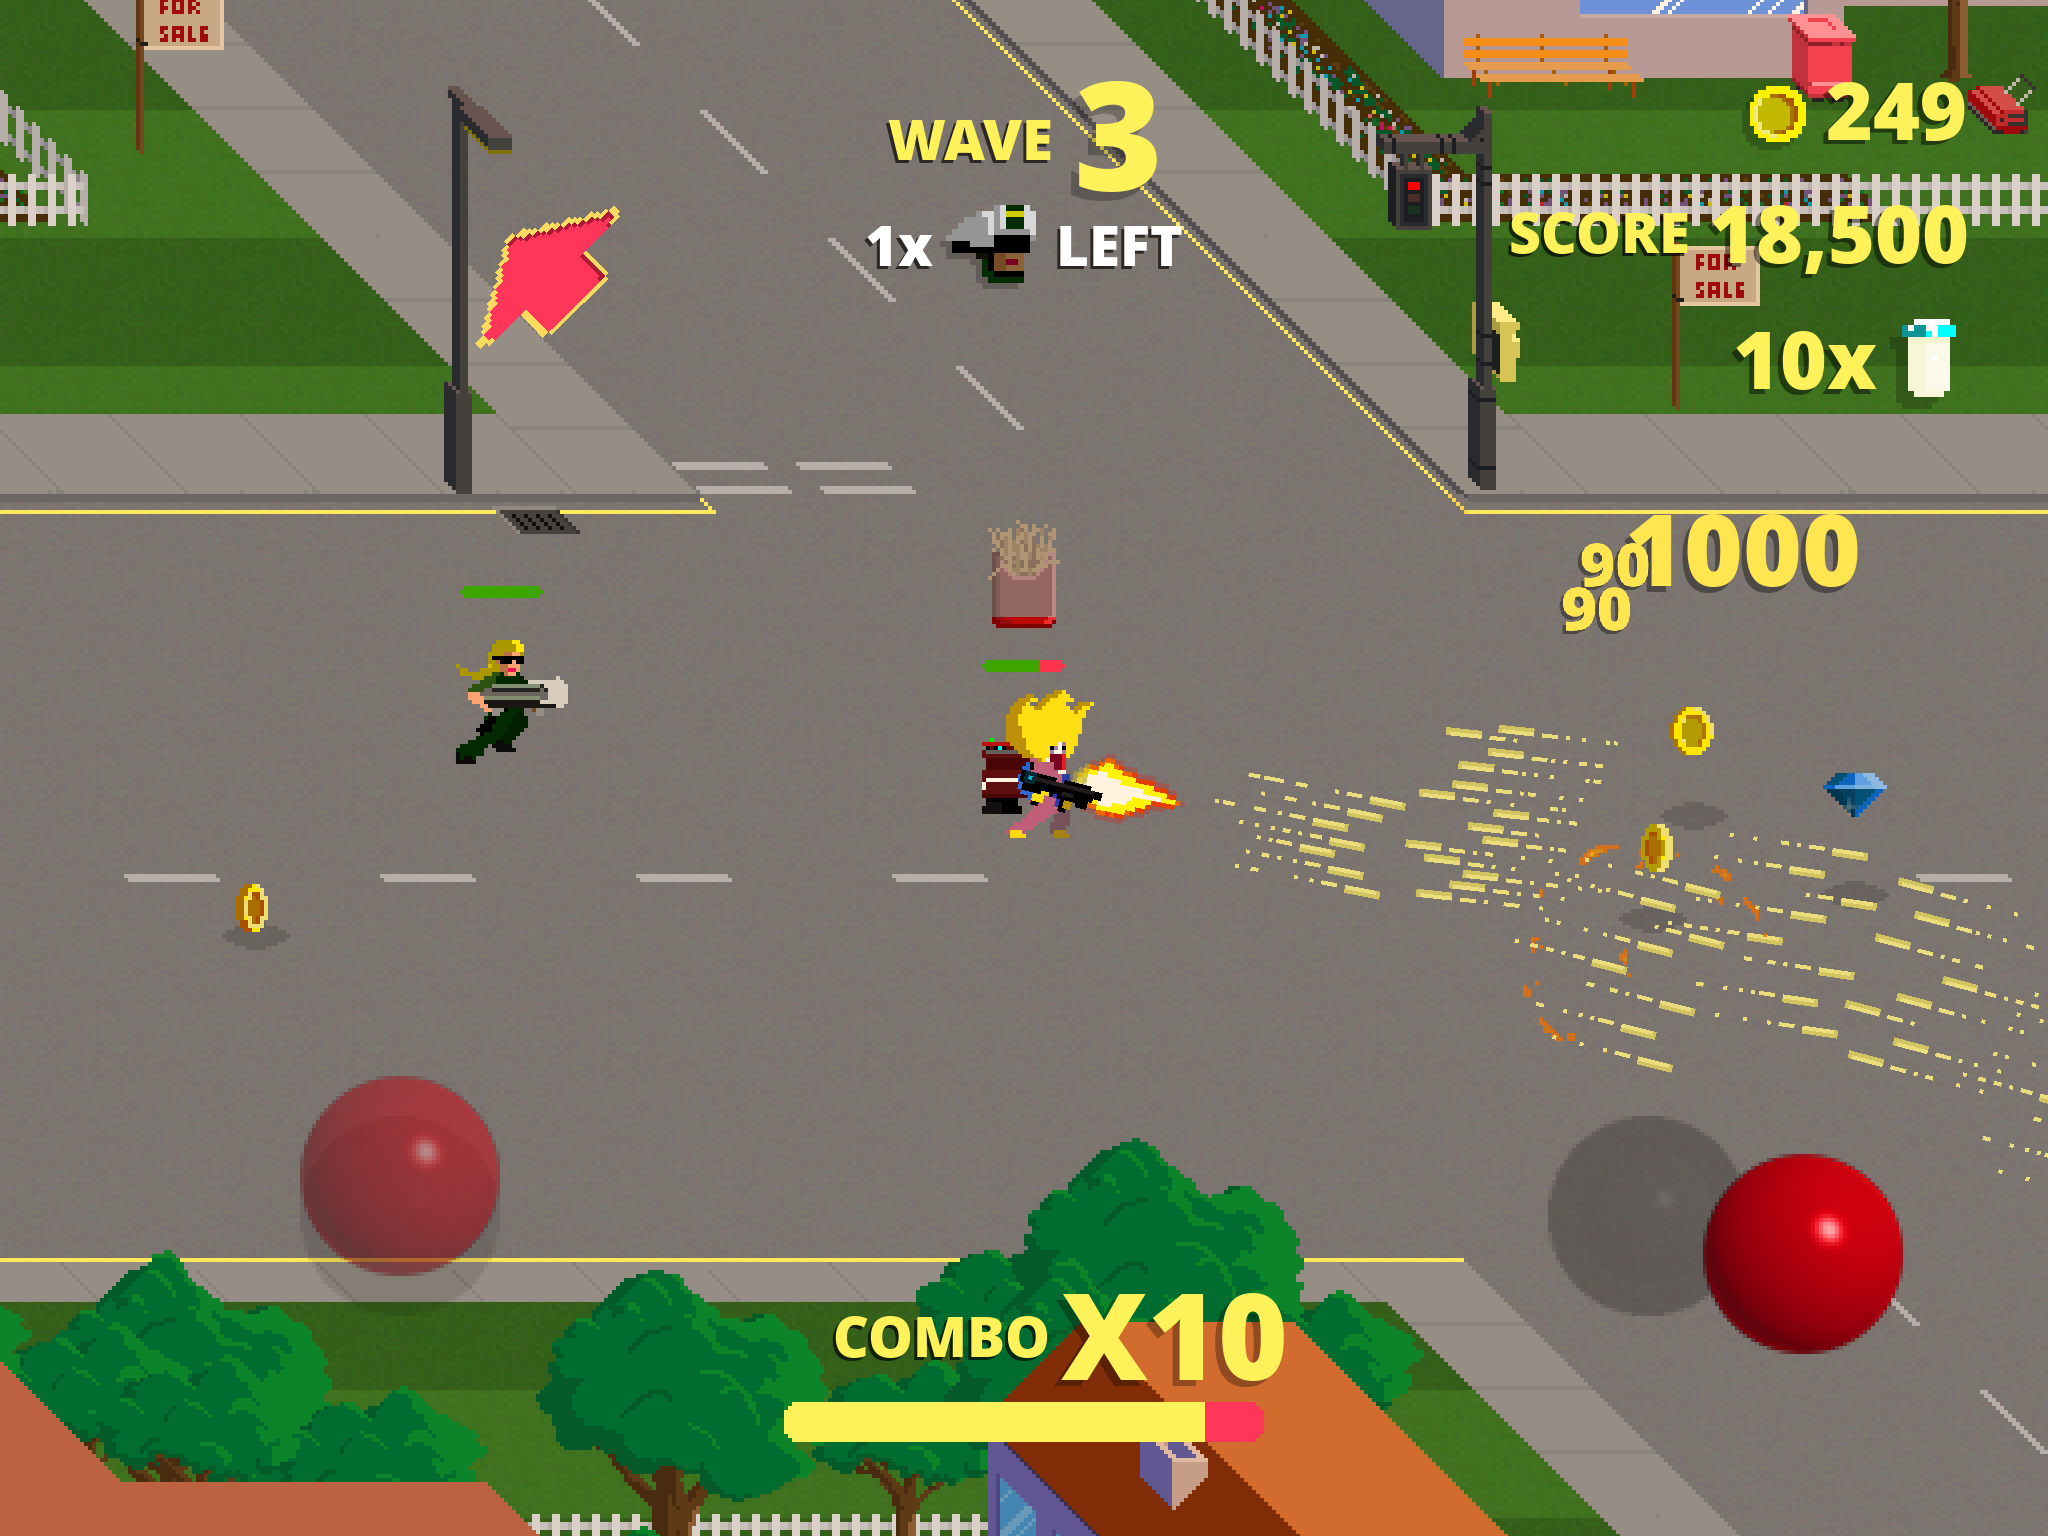 Fast Food Rampage review - A shooter that hits most of the right targets